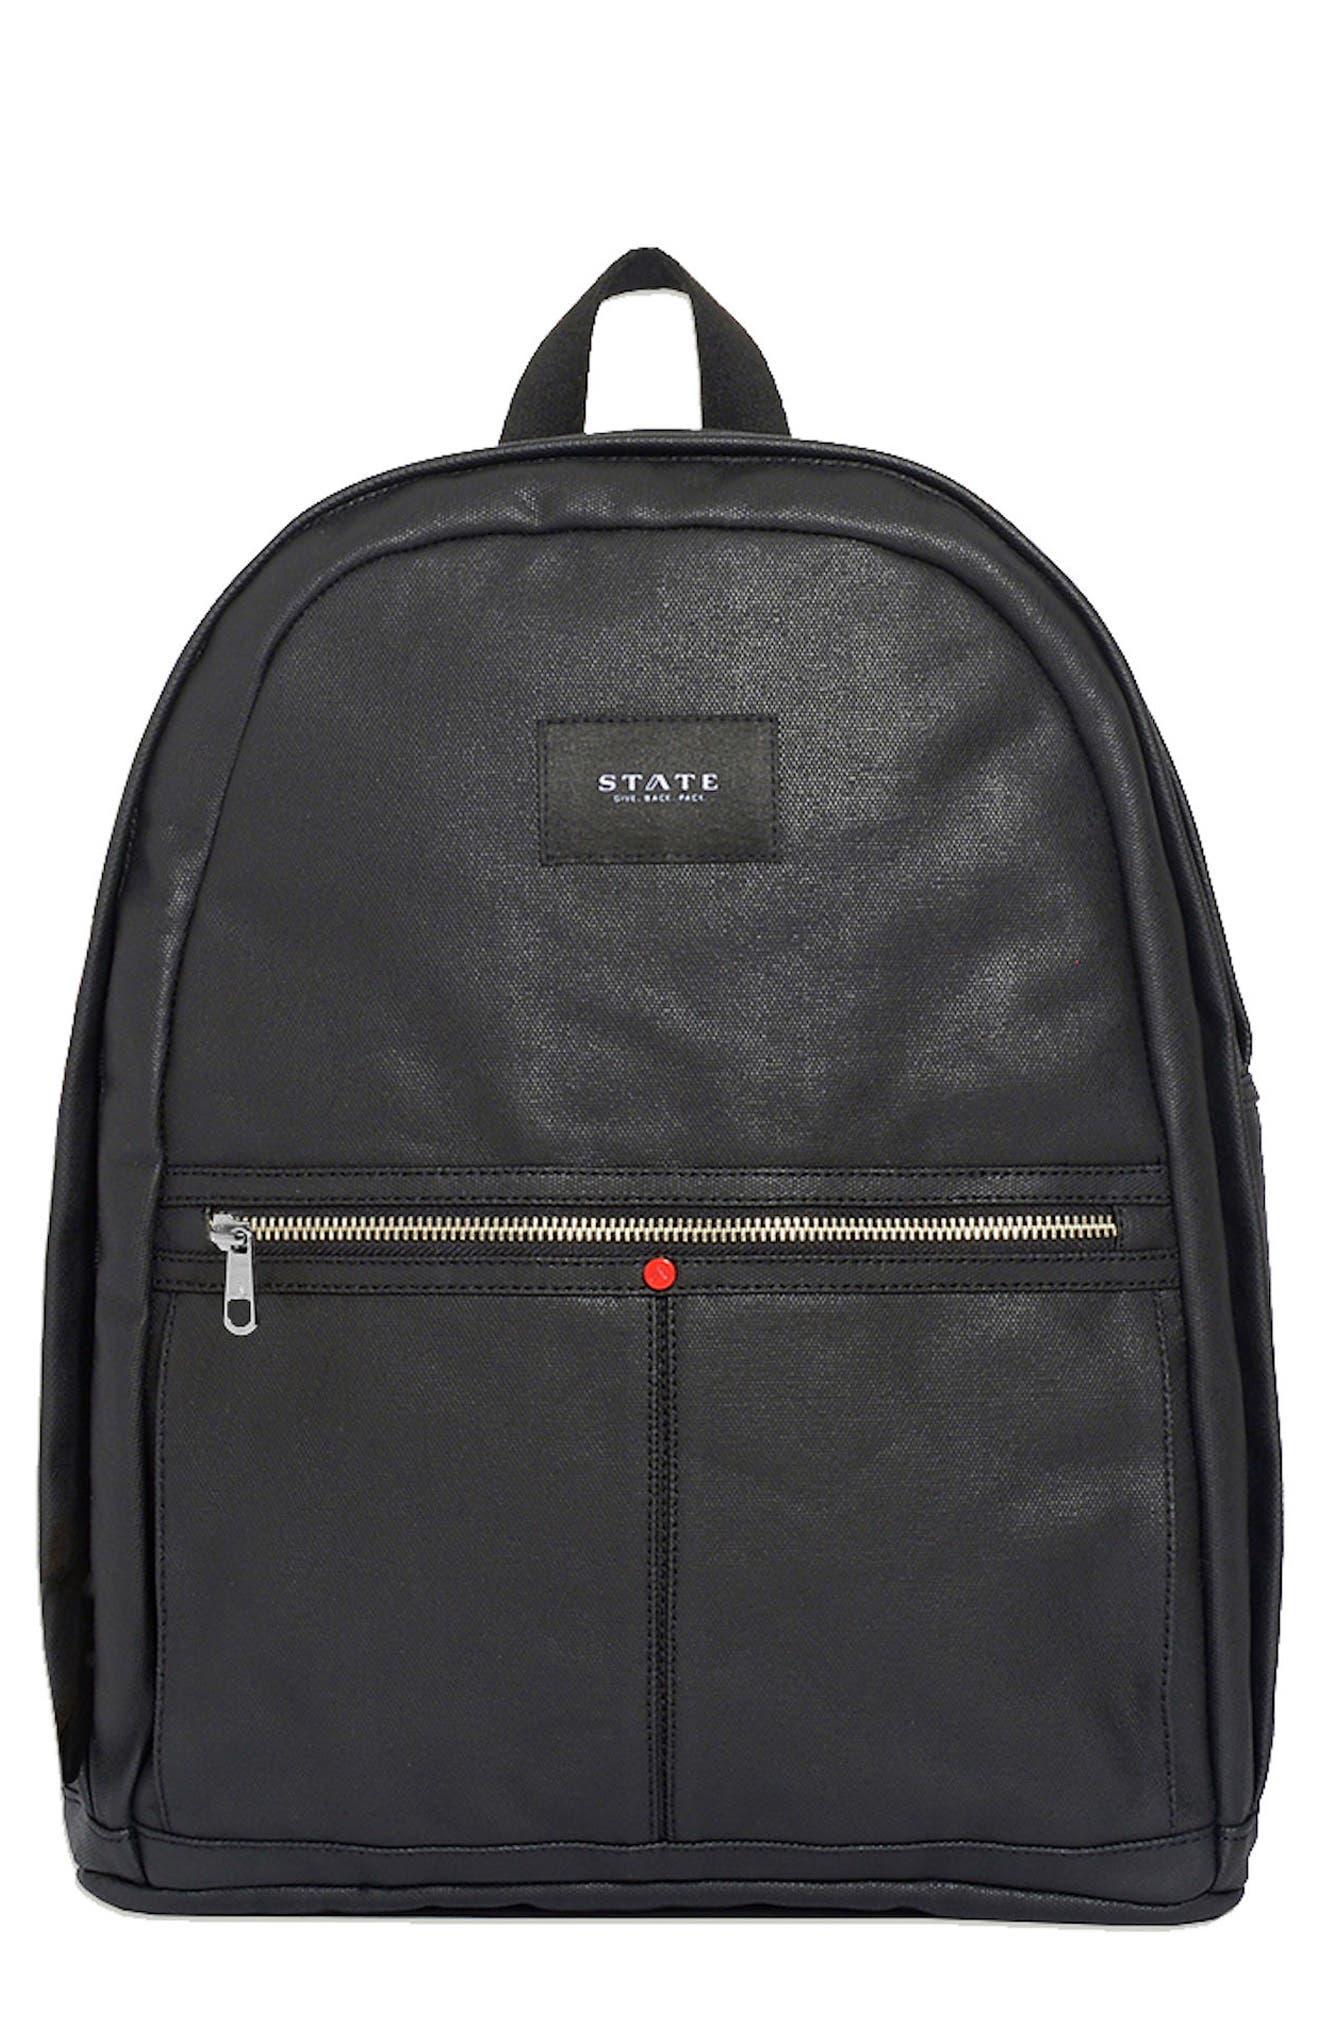 Greenpoint Kent Backpack,                             Main thumbnail 1, color,